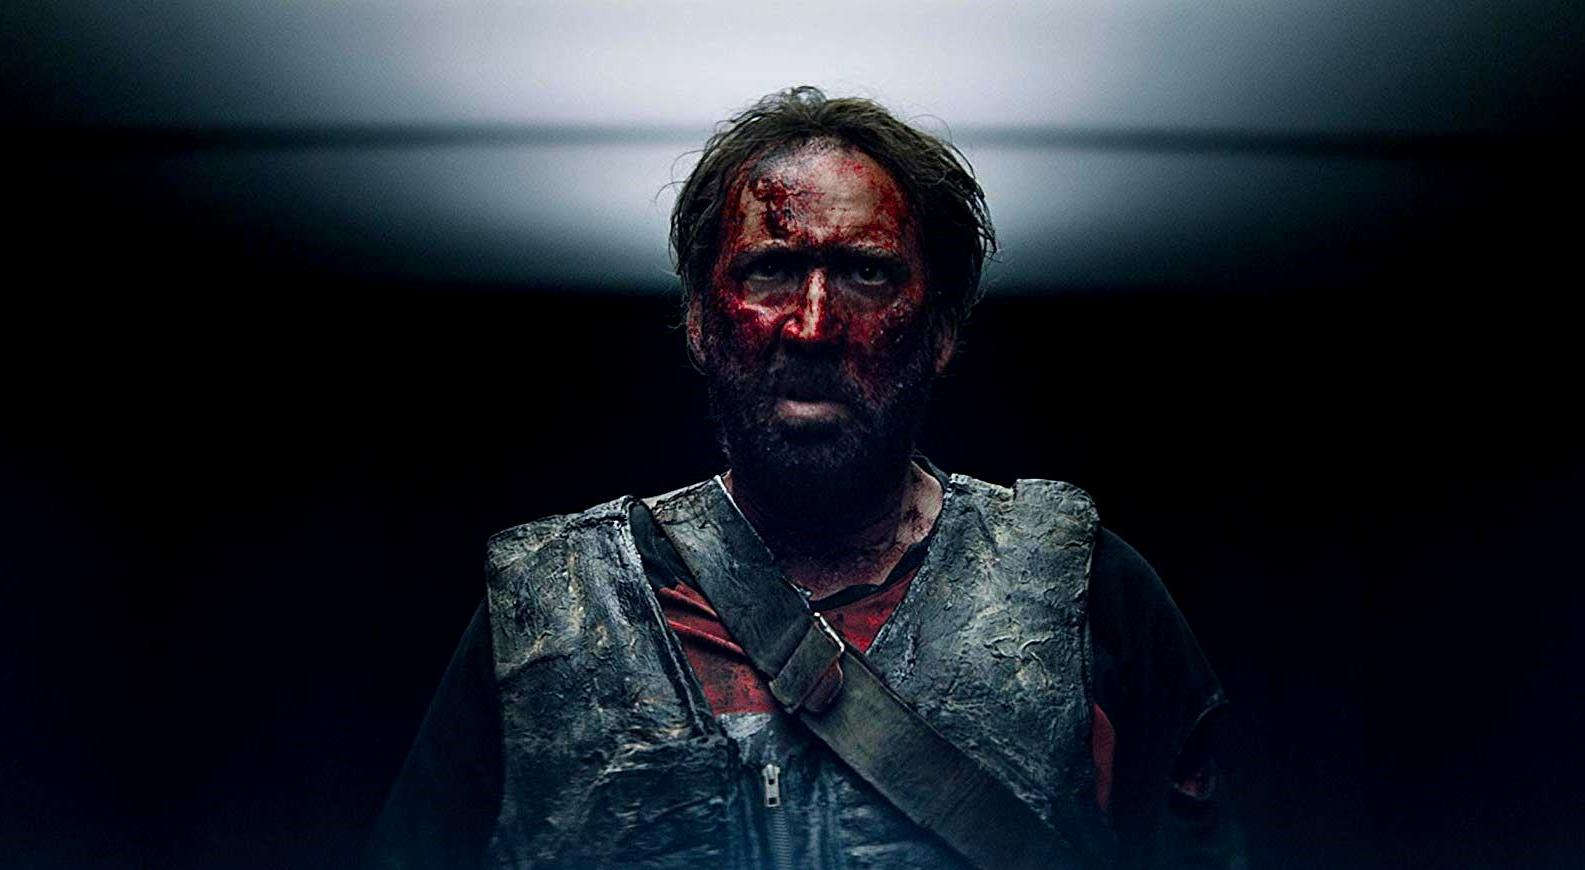 A blood-drenched Nicolas Cage seeks revenge in Mandy (2018)